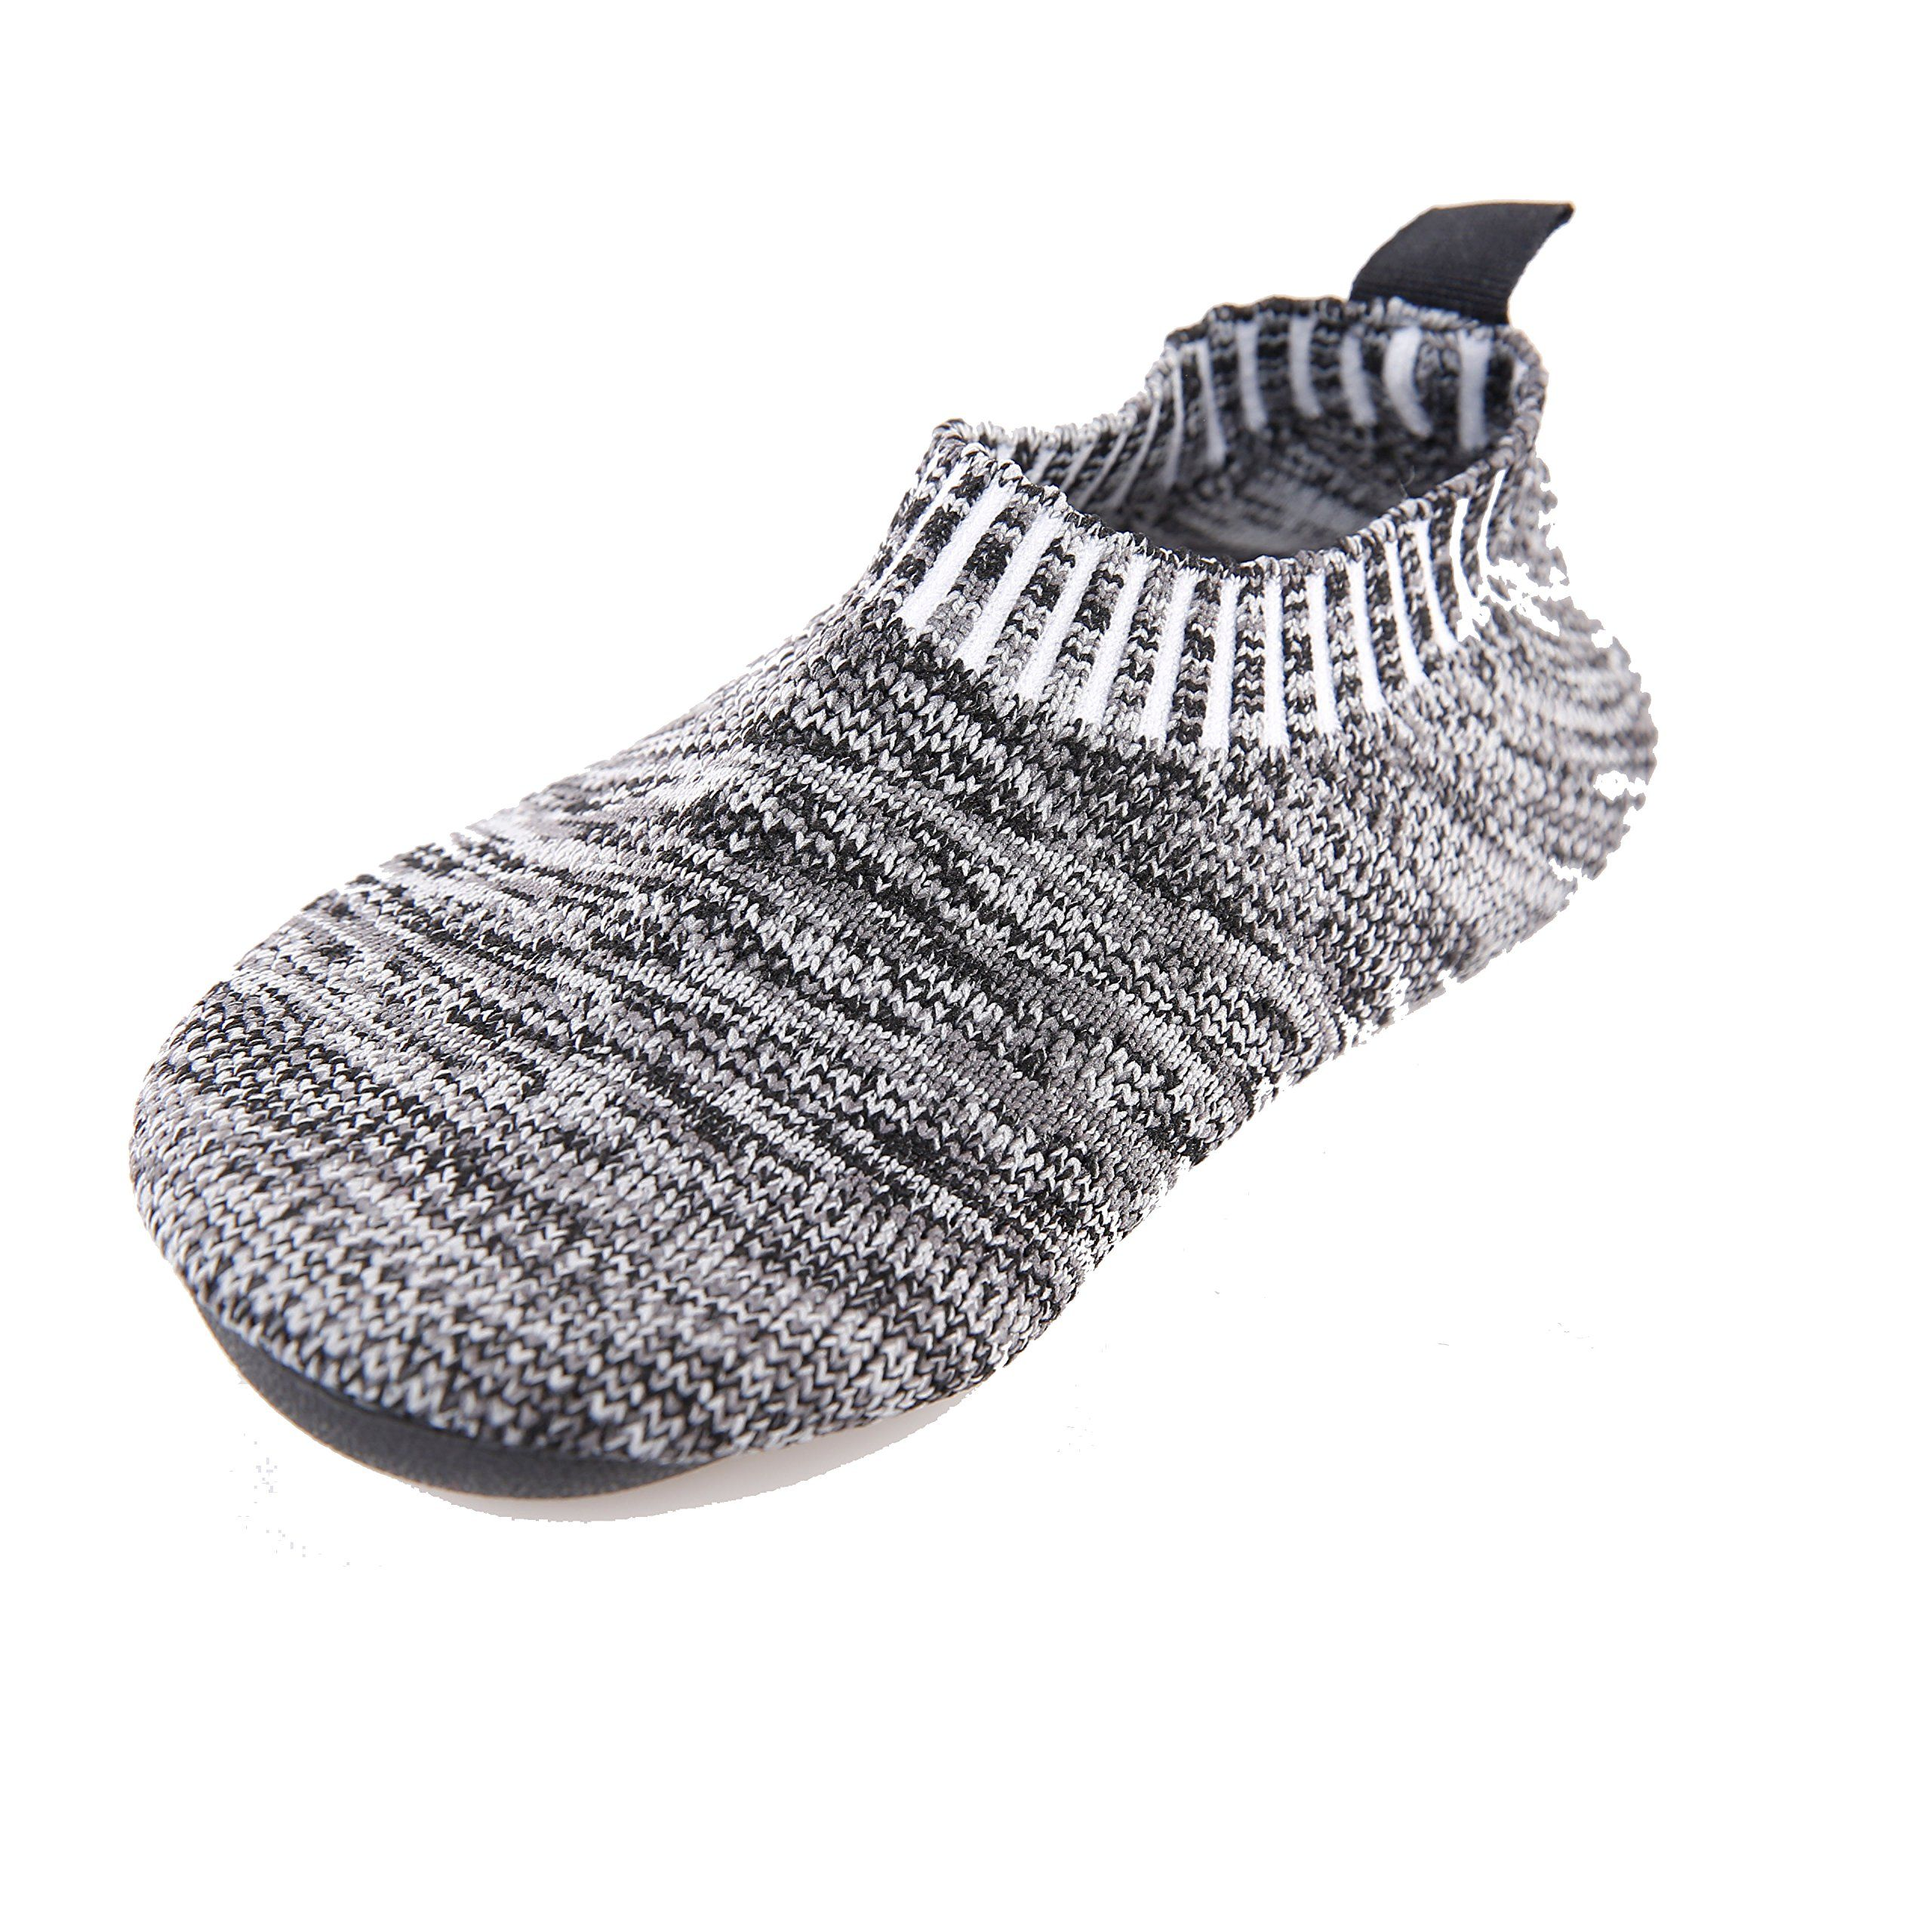 40b04f3be59 Extracomft Toddler Shoes 3D Flying Knitting Kids Home Shoes NonSlip  Breathable Bag With Slippers Barefoot Outdoor Indoor Shoes Boy   BestRunningShoesIdeas